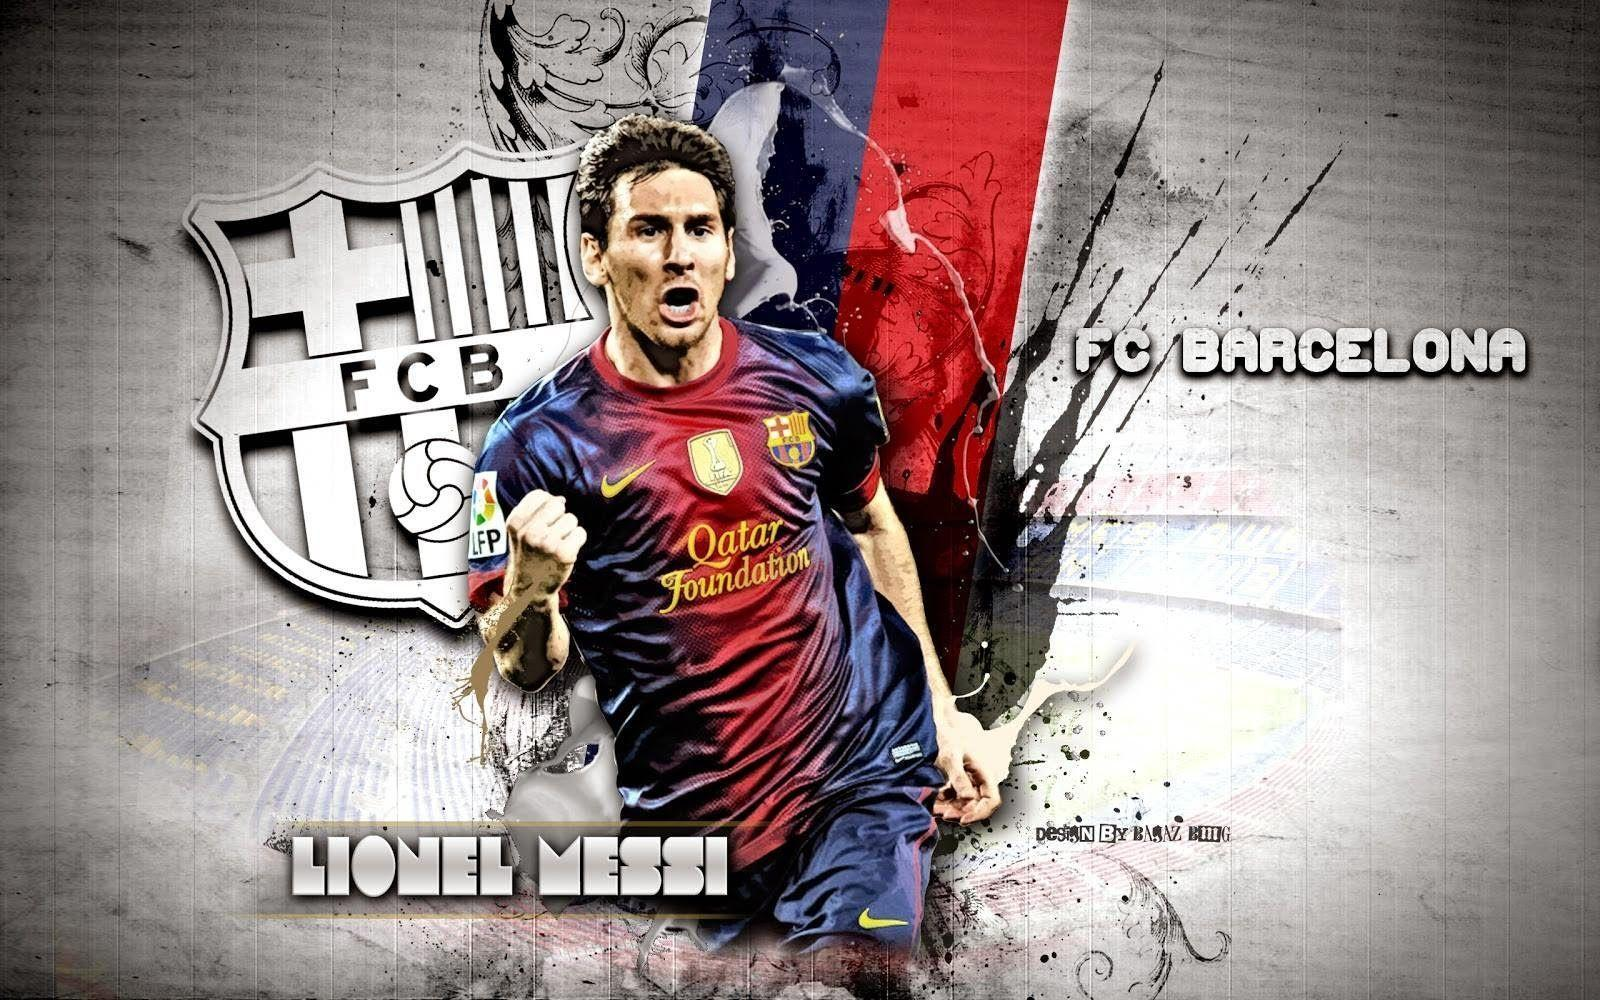 Leo Messi FC Barcelona HD Wallpapers 2014-2015 ~ Cules de fc Barcelona